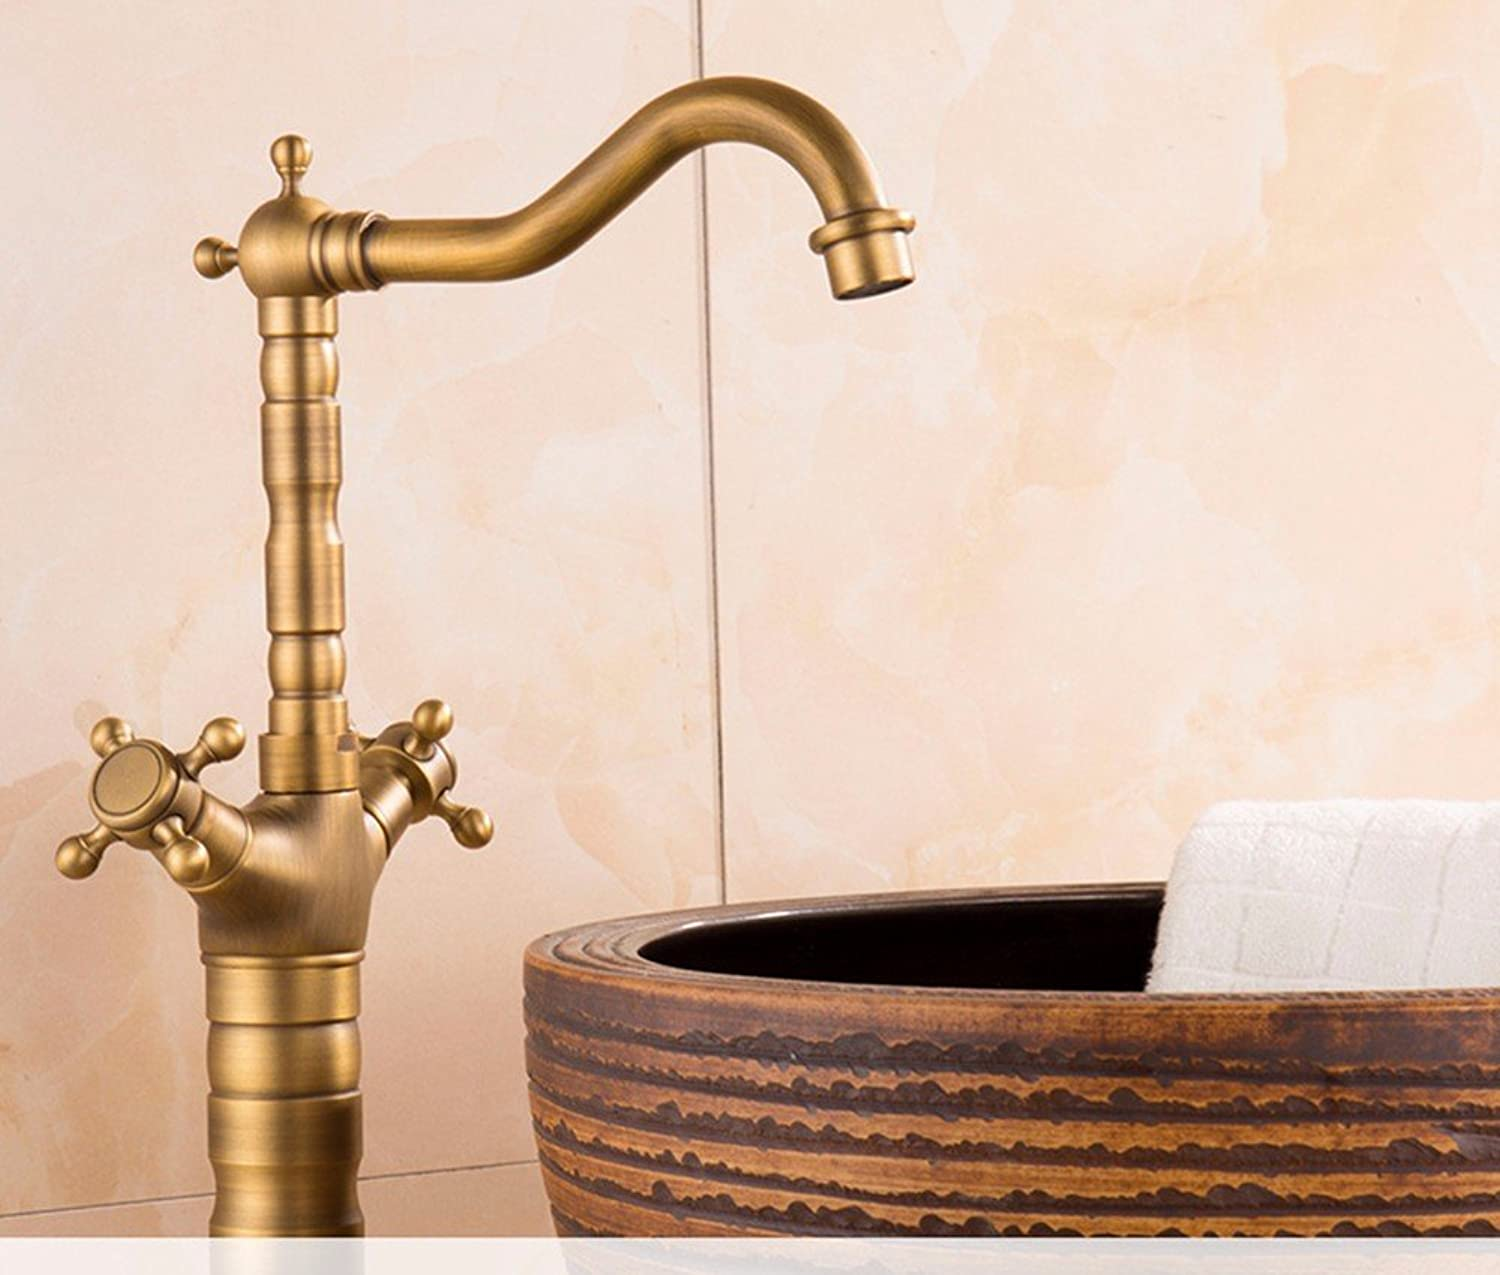 AWXJX European style retro style copper single hole kitchen basin hot and cold water leading to